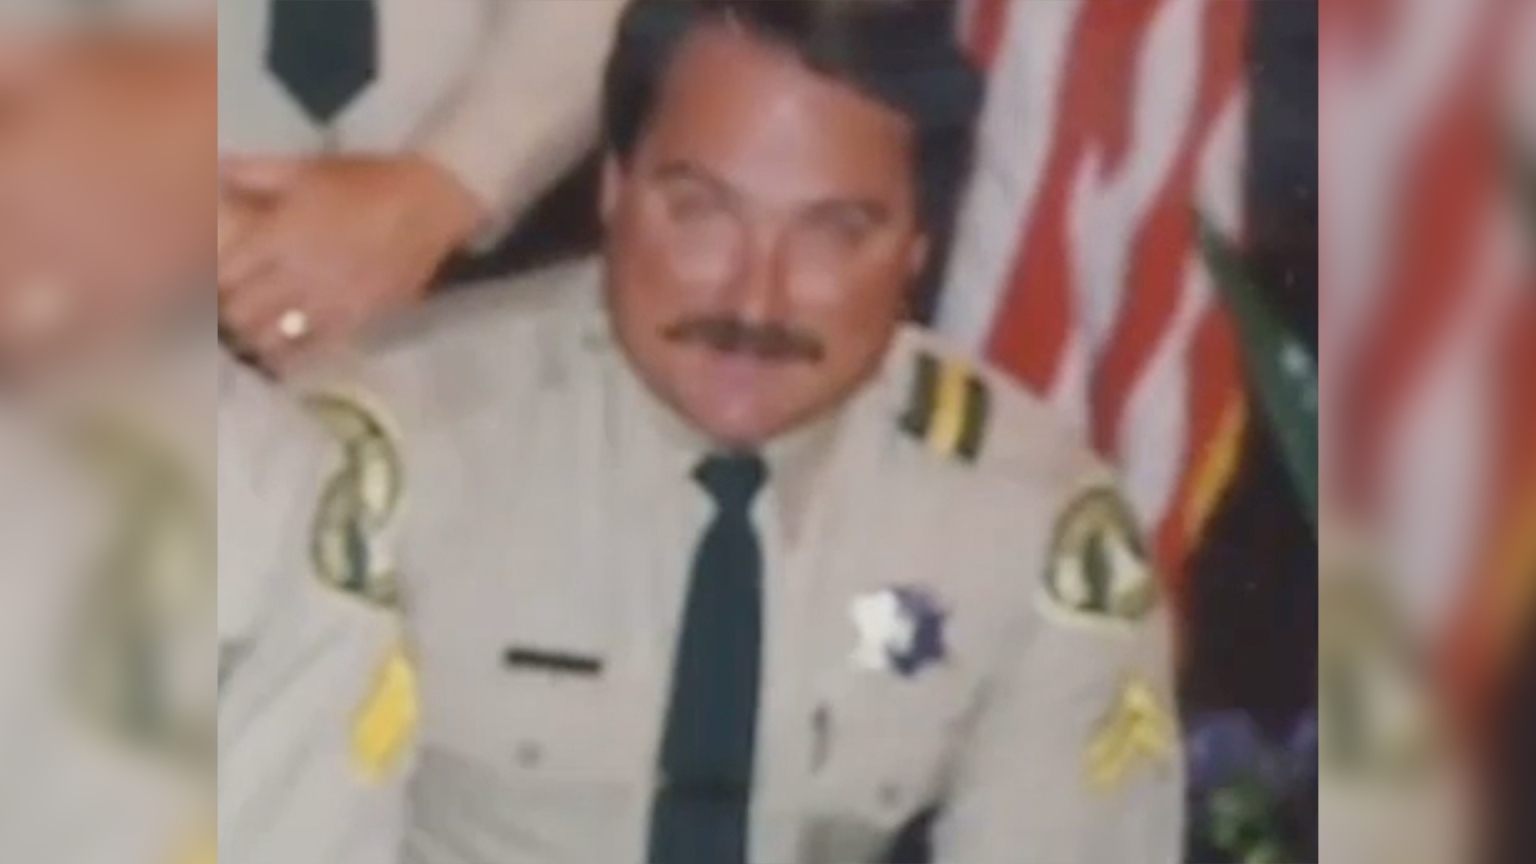 Exclusive: Former Riverside County Sheriff's Employee Breaks Silence on Child Abuse Case